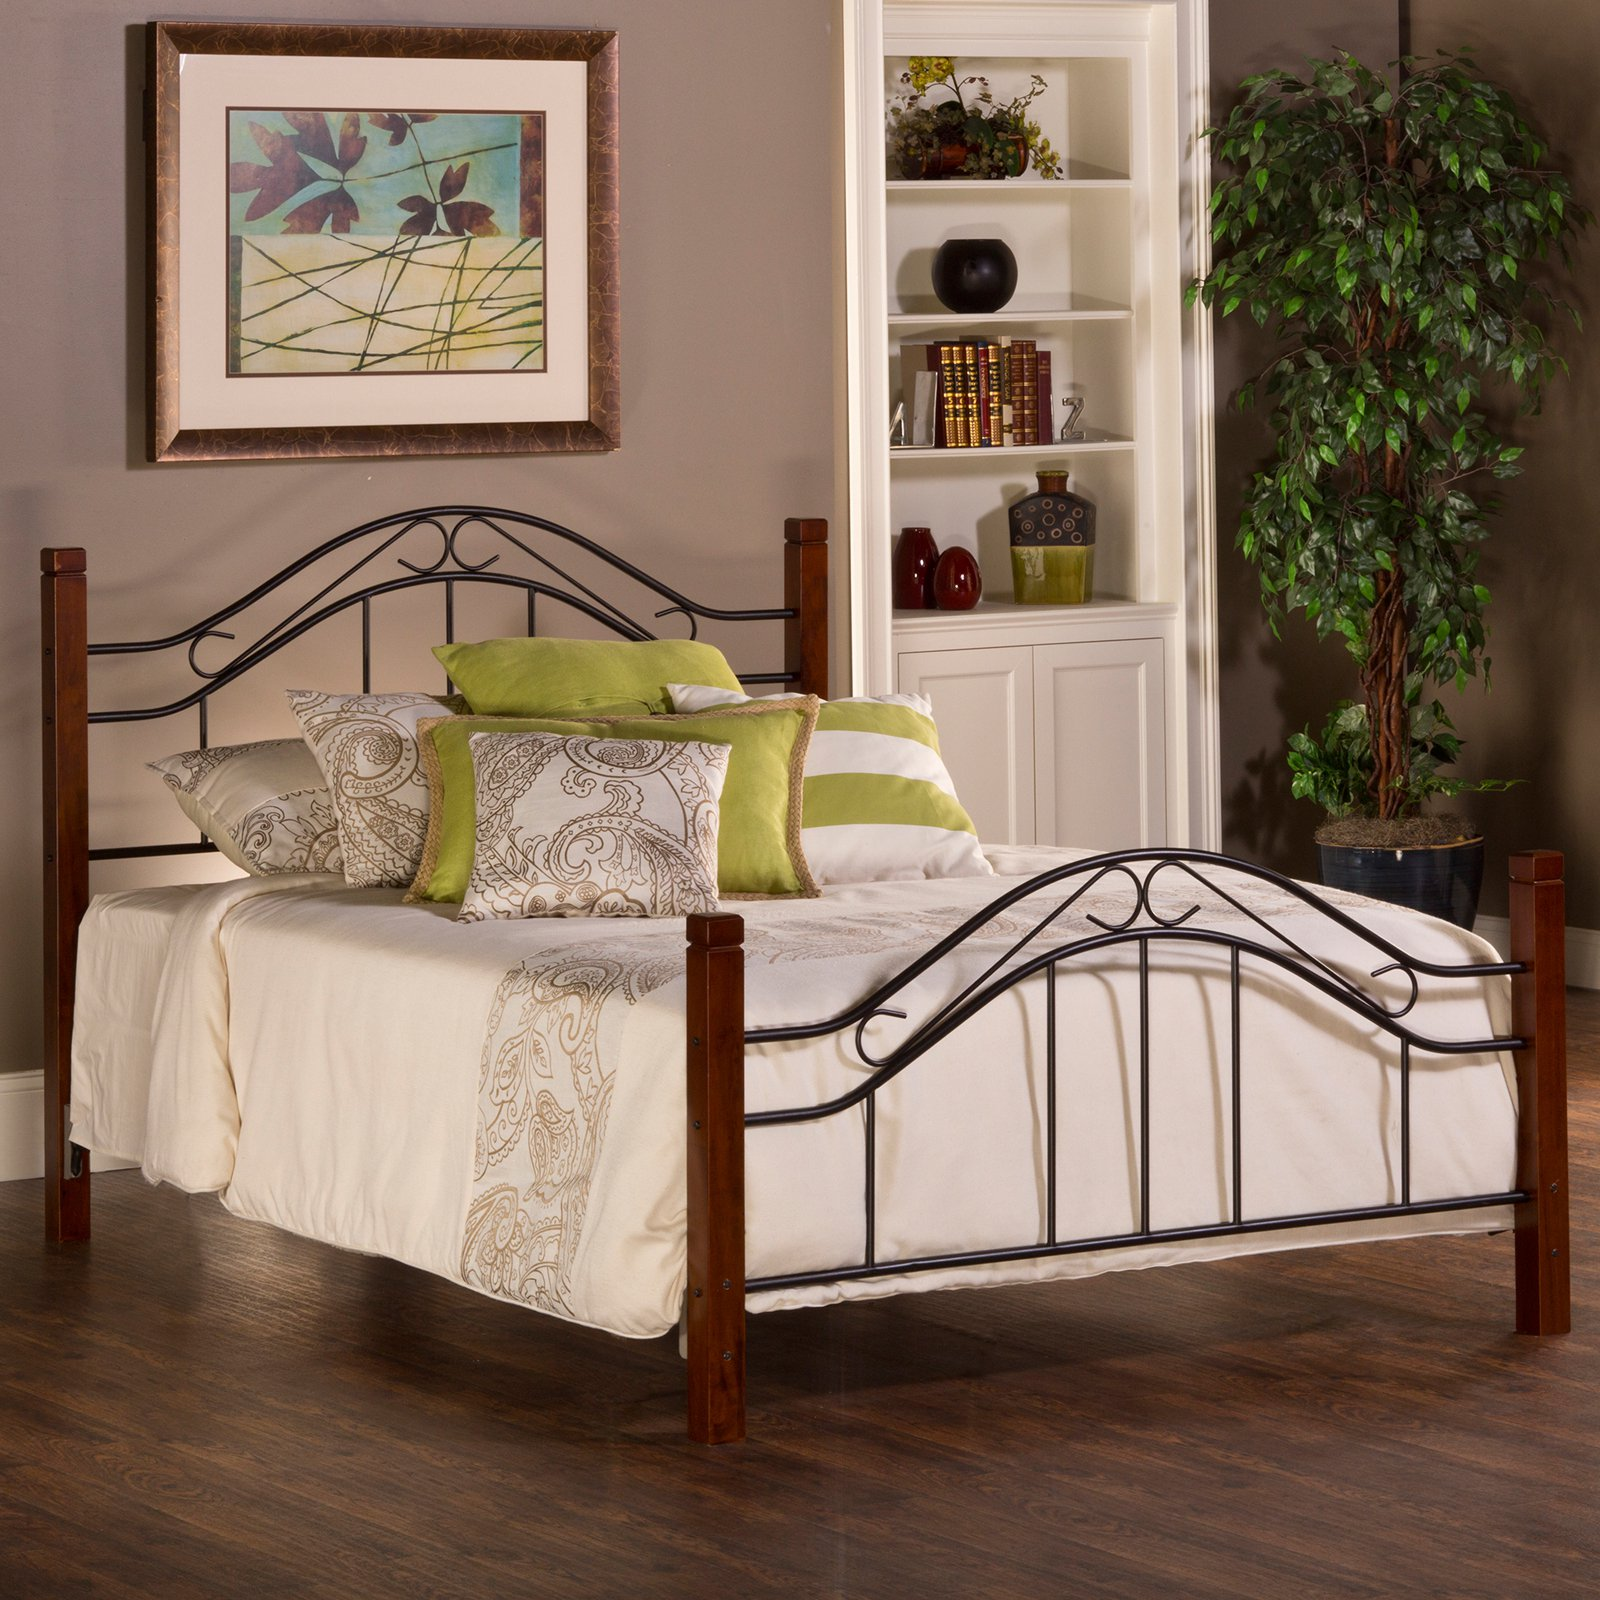 Hillsdale Furniture Matson King Headboard with Bed frame, Cherry / Black Finish